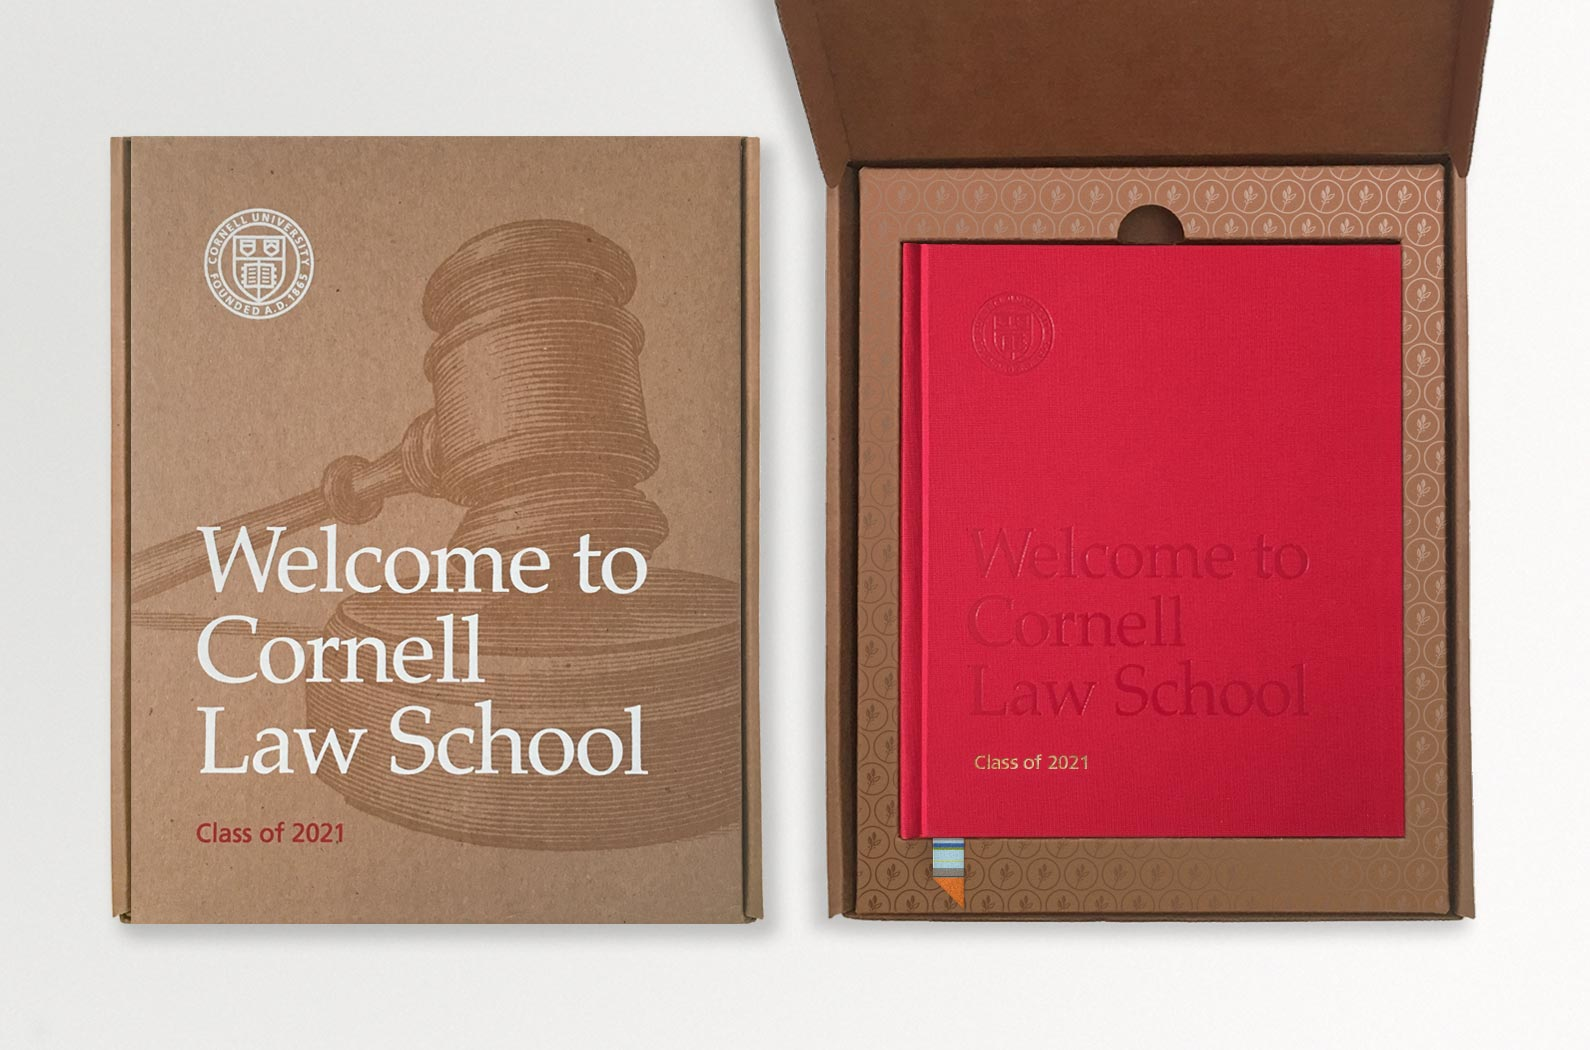 Welcome to Cornell Law School Admissions Package Box and Book